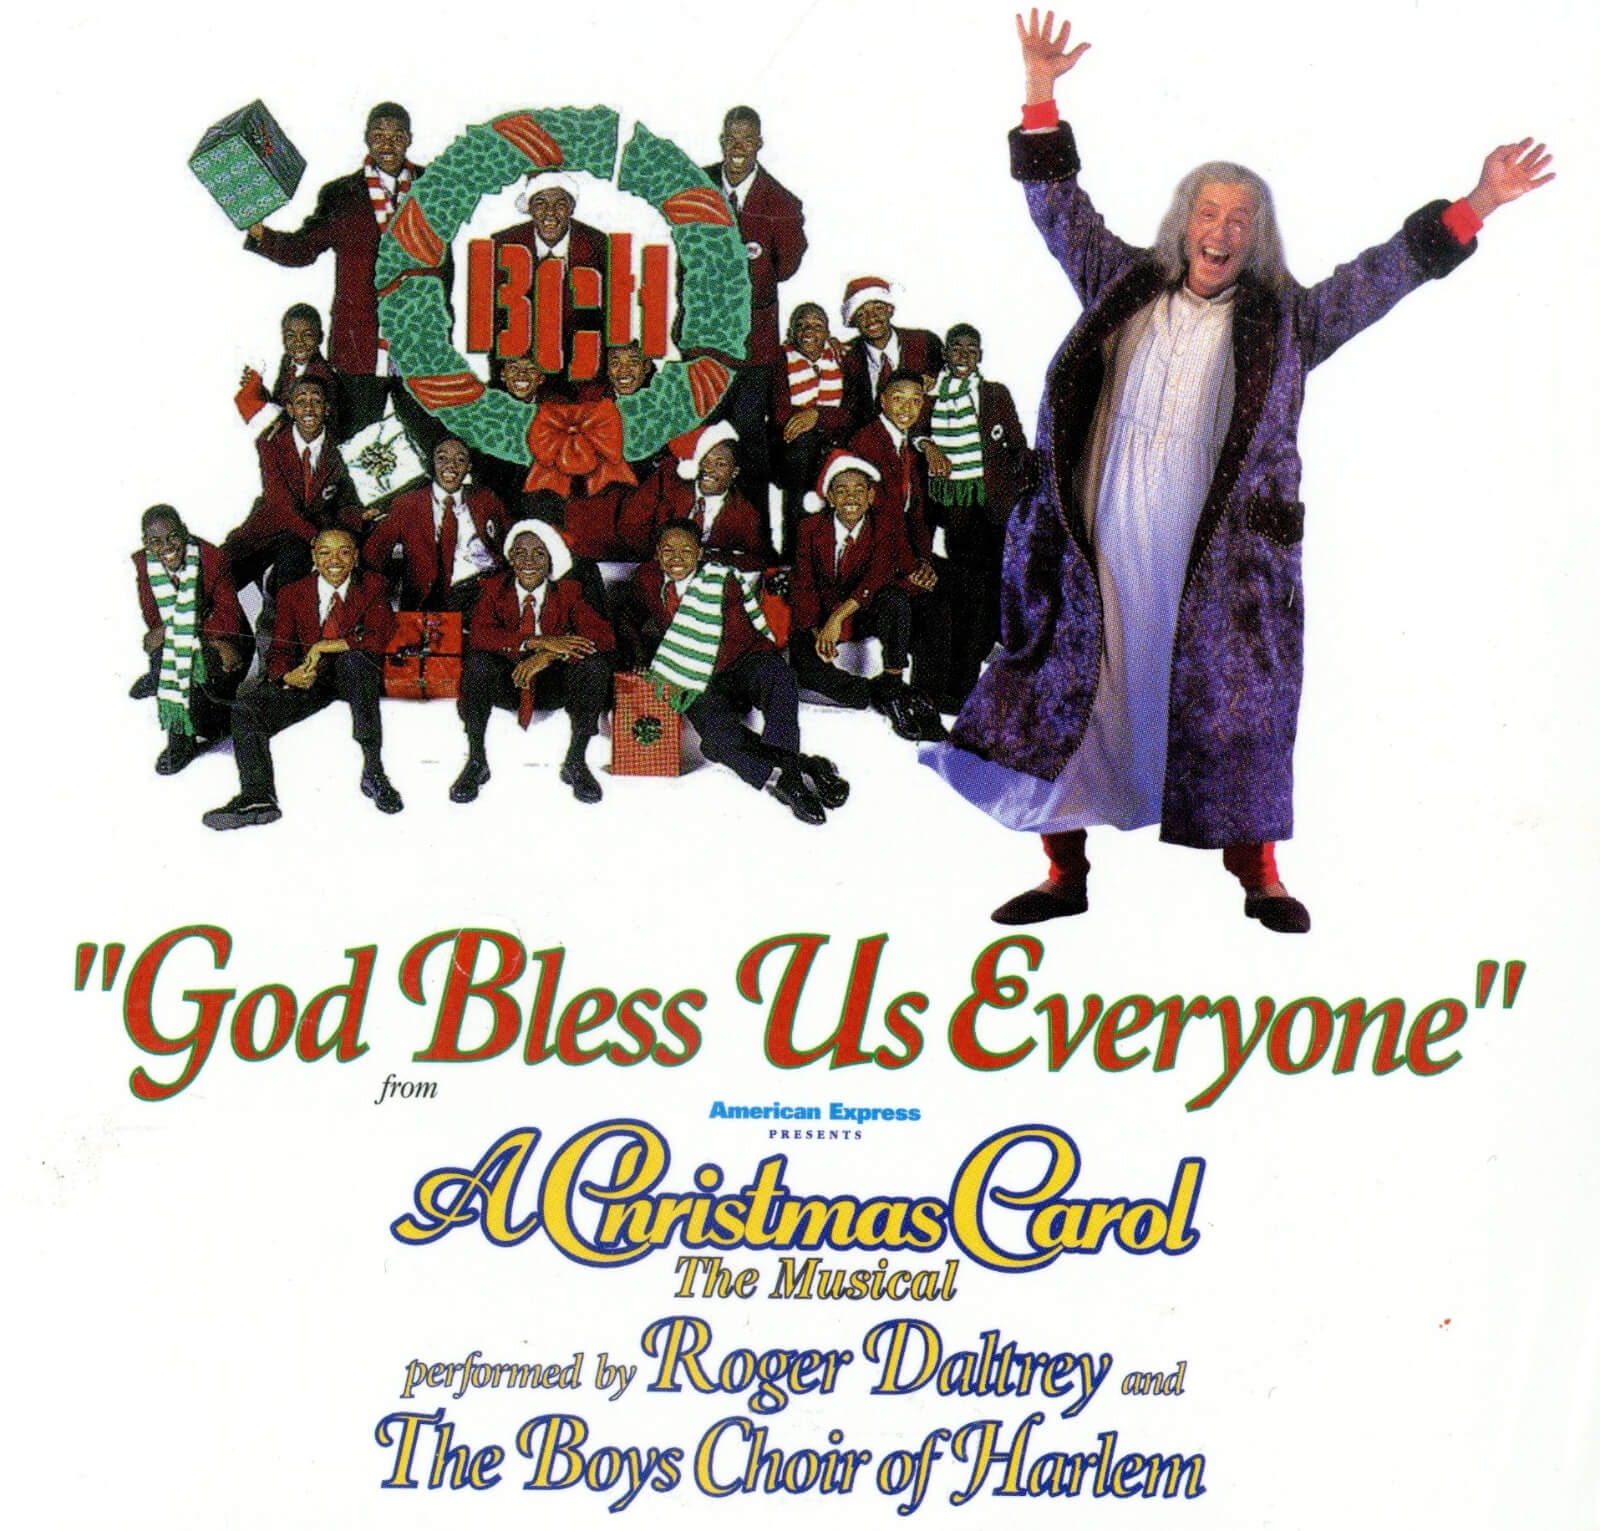 """Album art for the single """"God Bless Us Everyone"""" featuring Roger Daltrey and The Boys Choir of Harlem."""